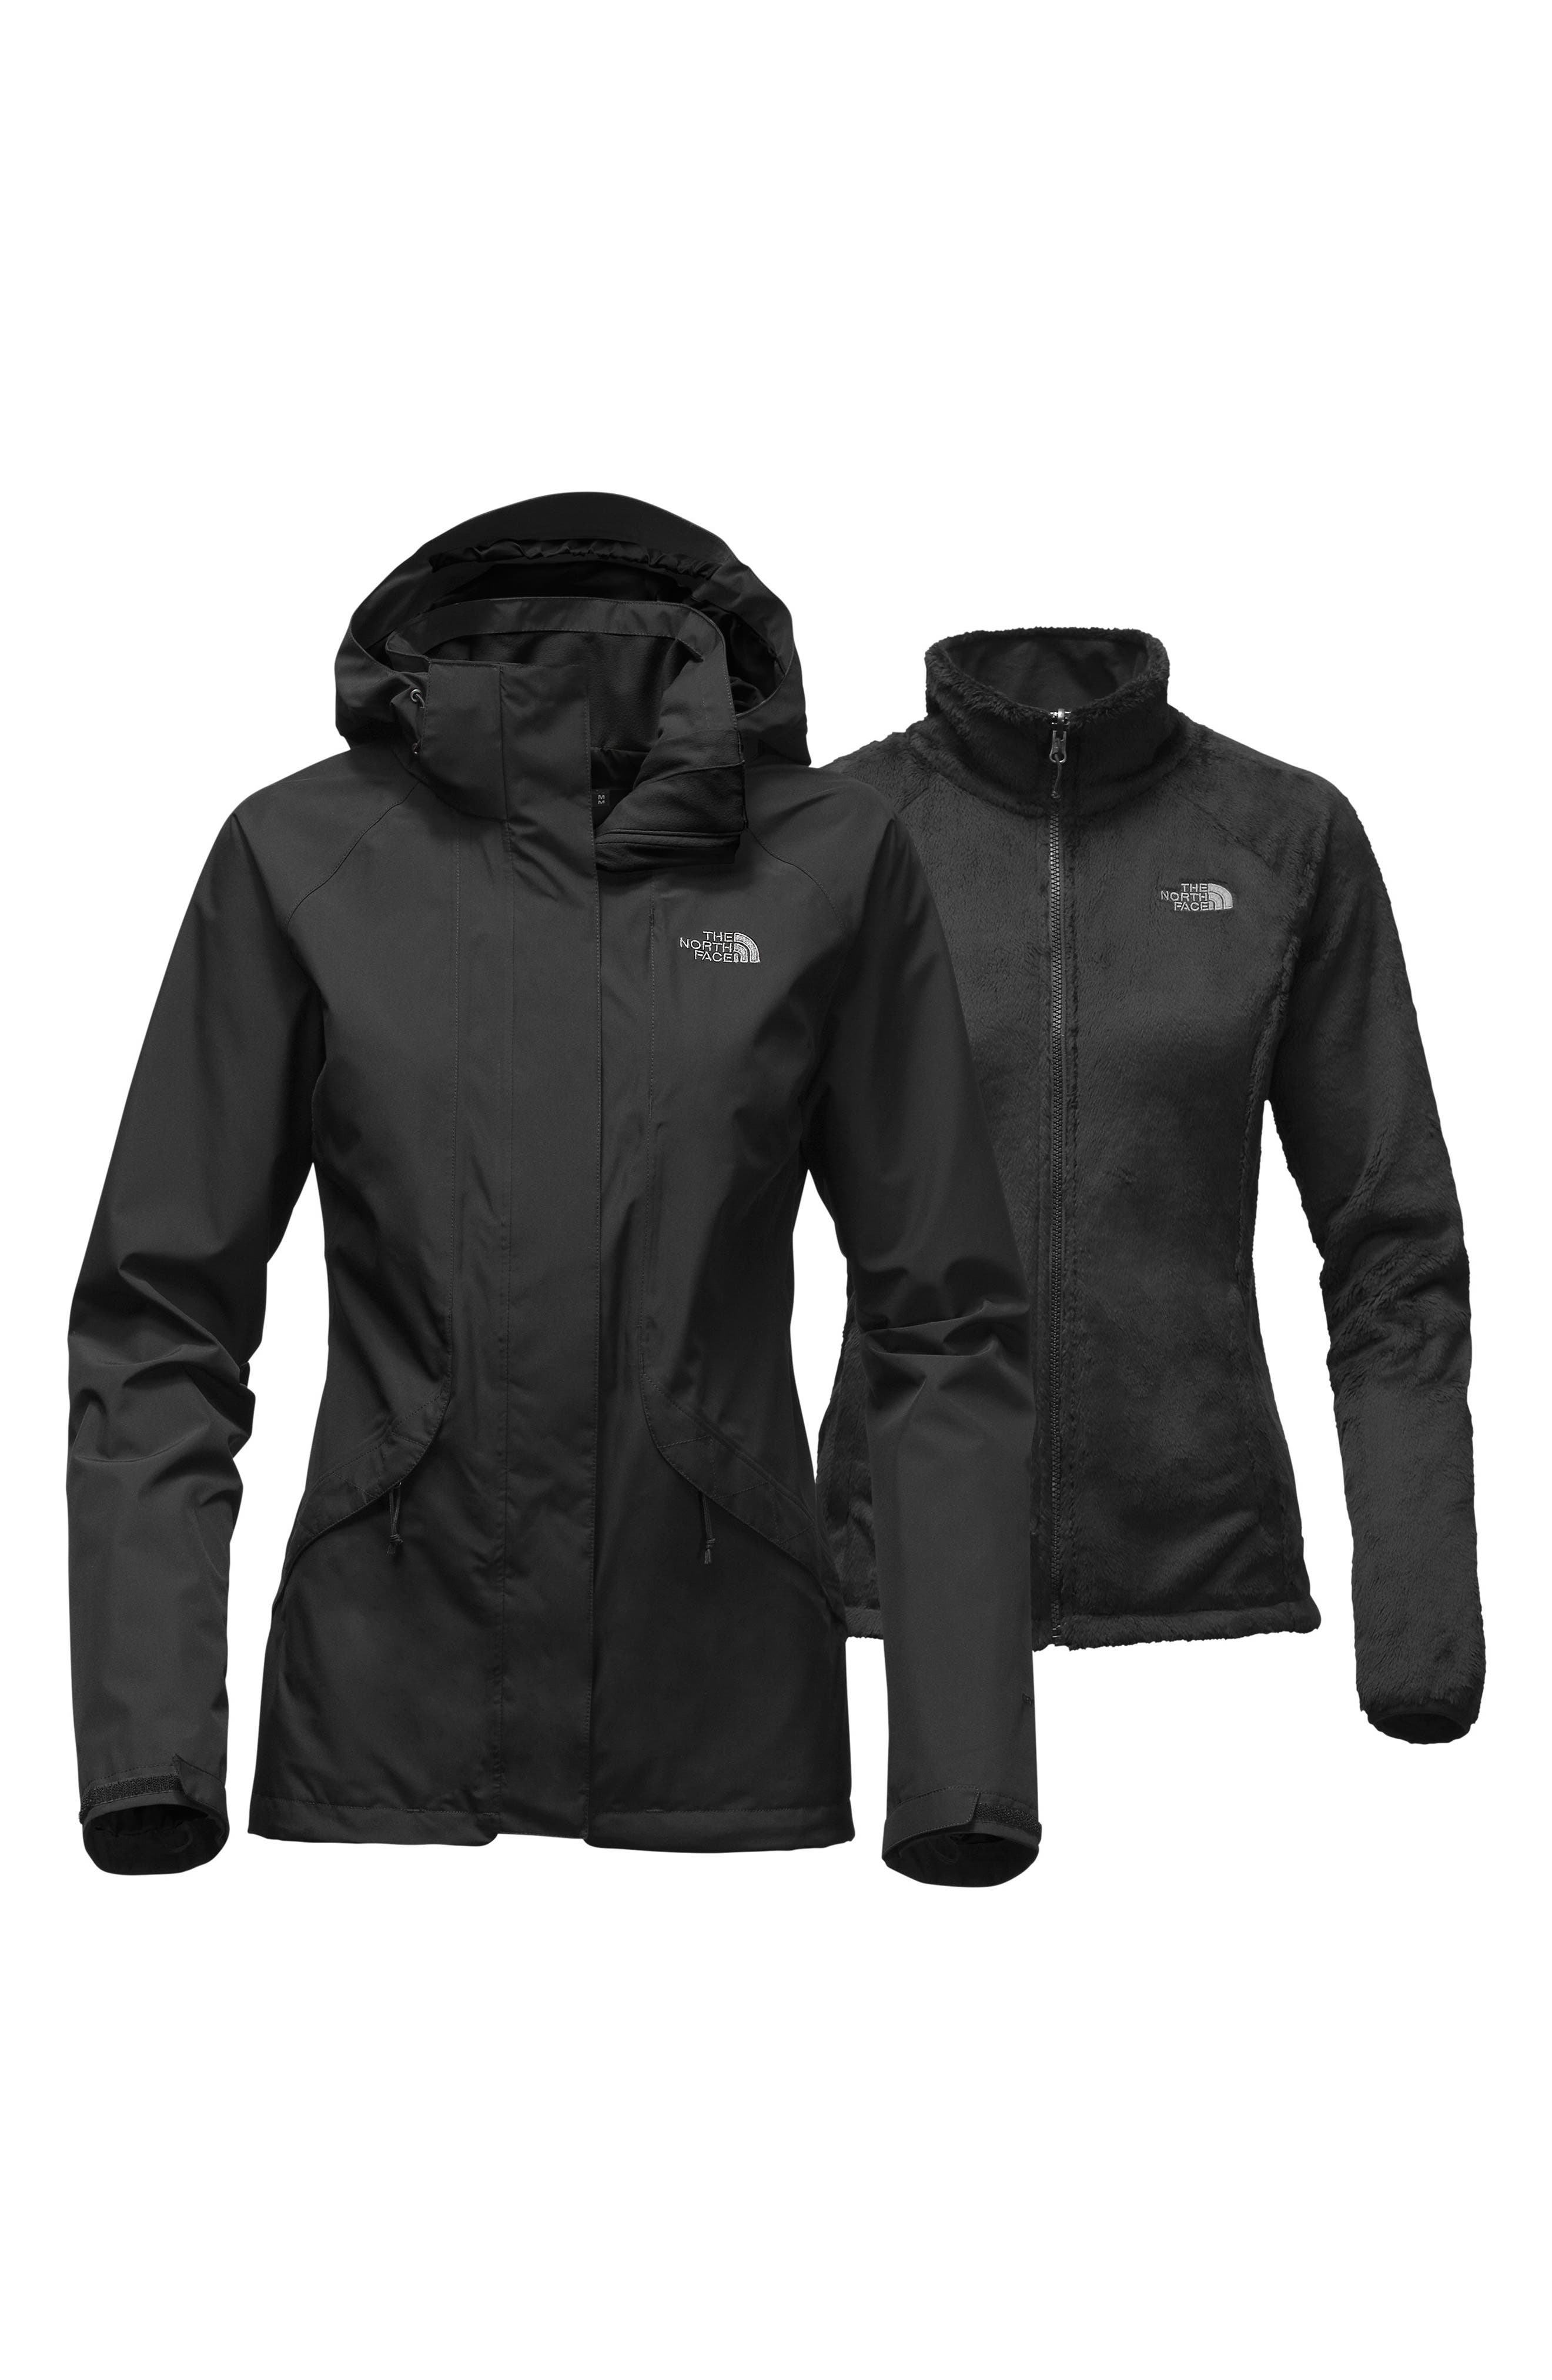 Boundary Triclimate<sup>®</sup> 3-in-1 Jacket,                             Alternate thumbnail 12, color,